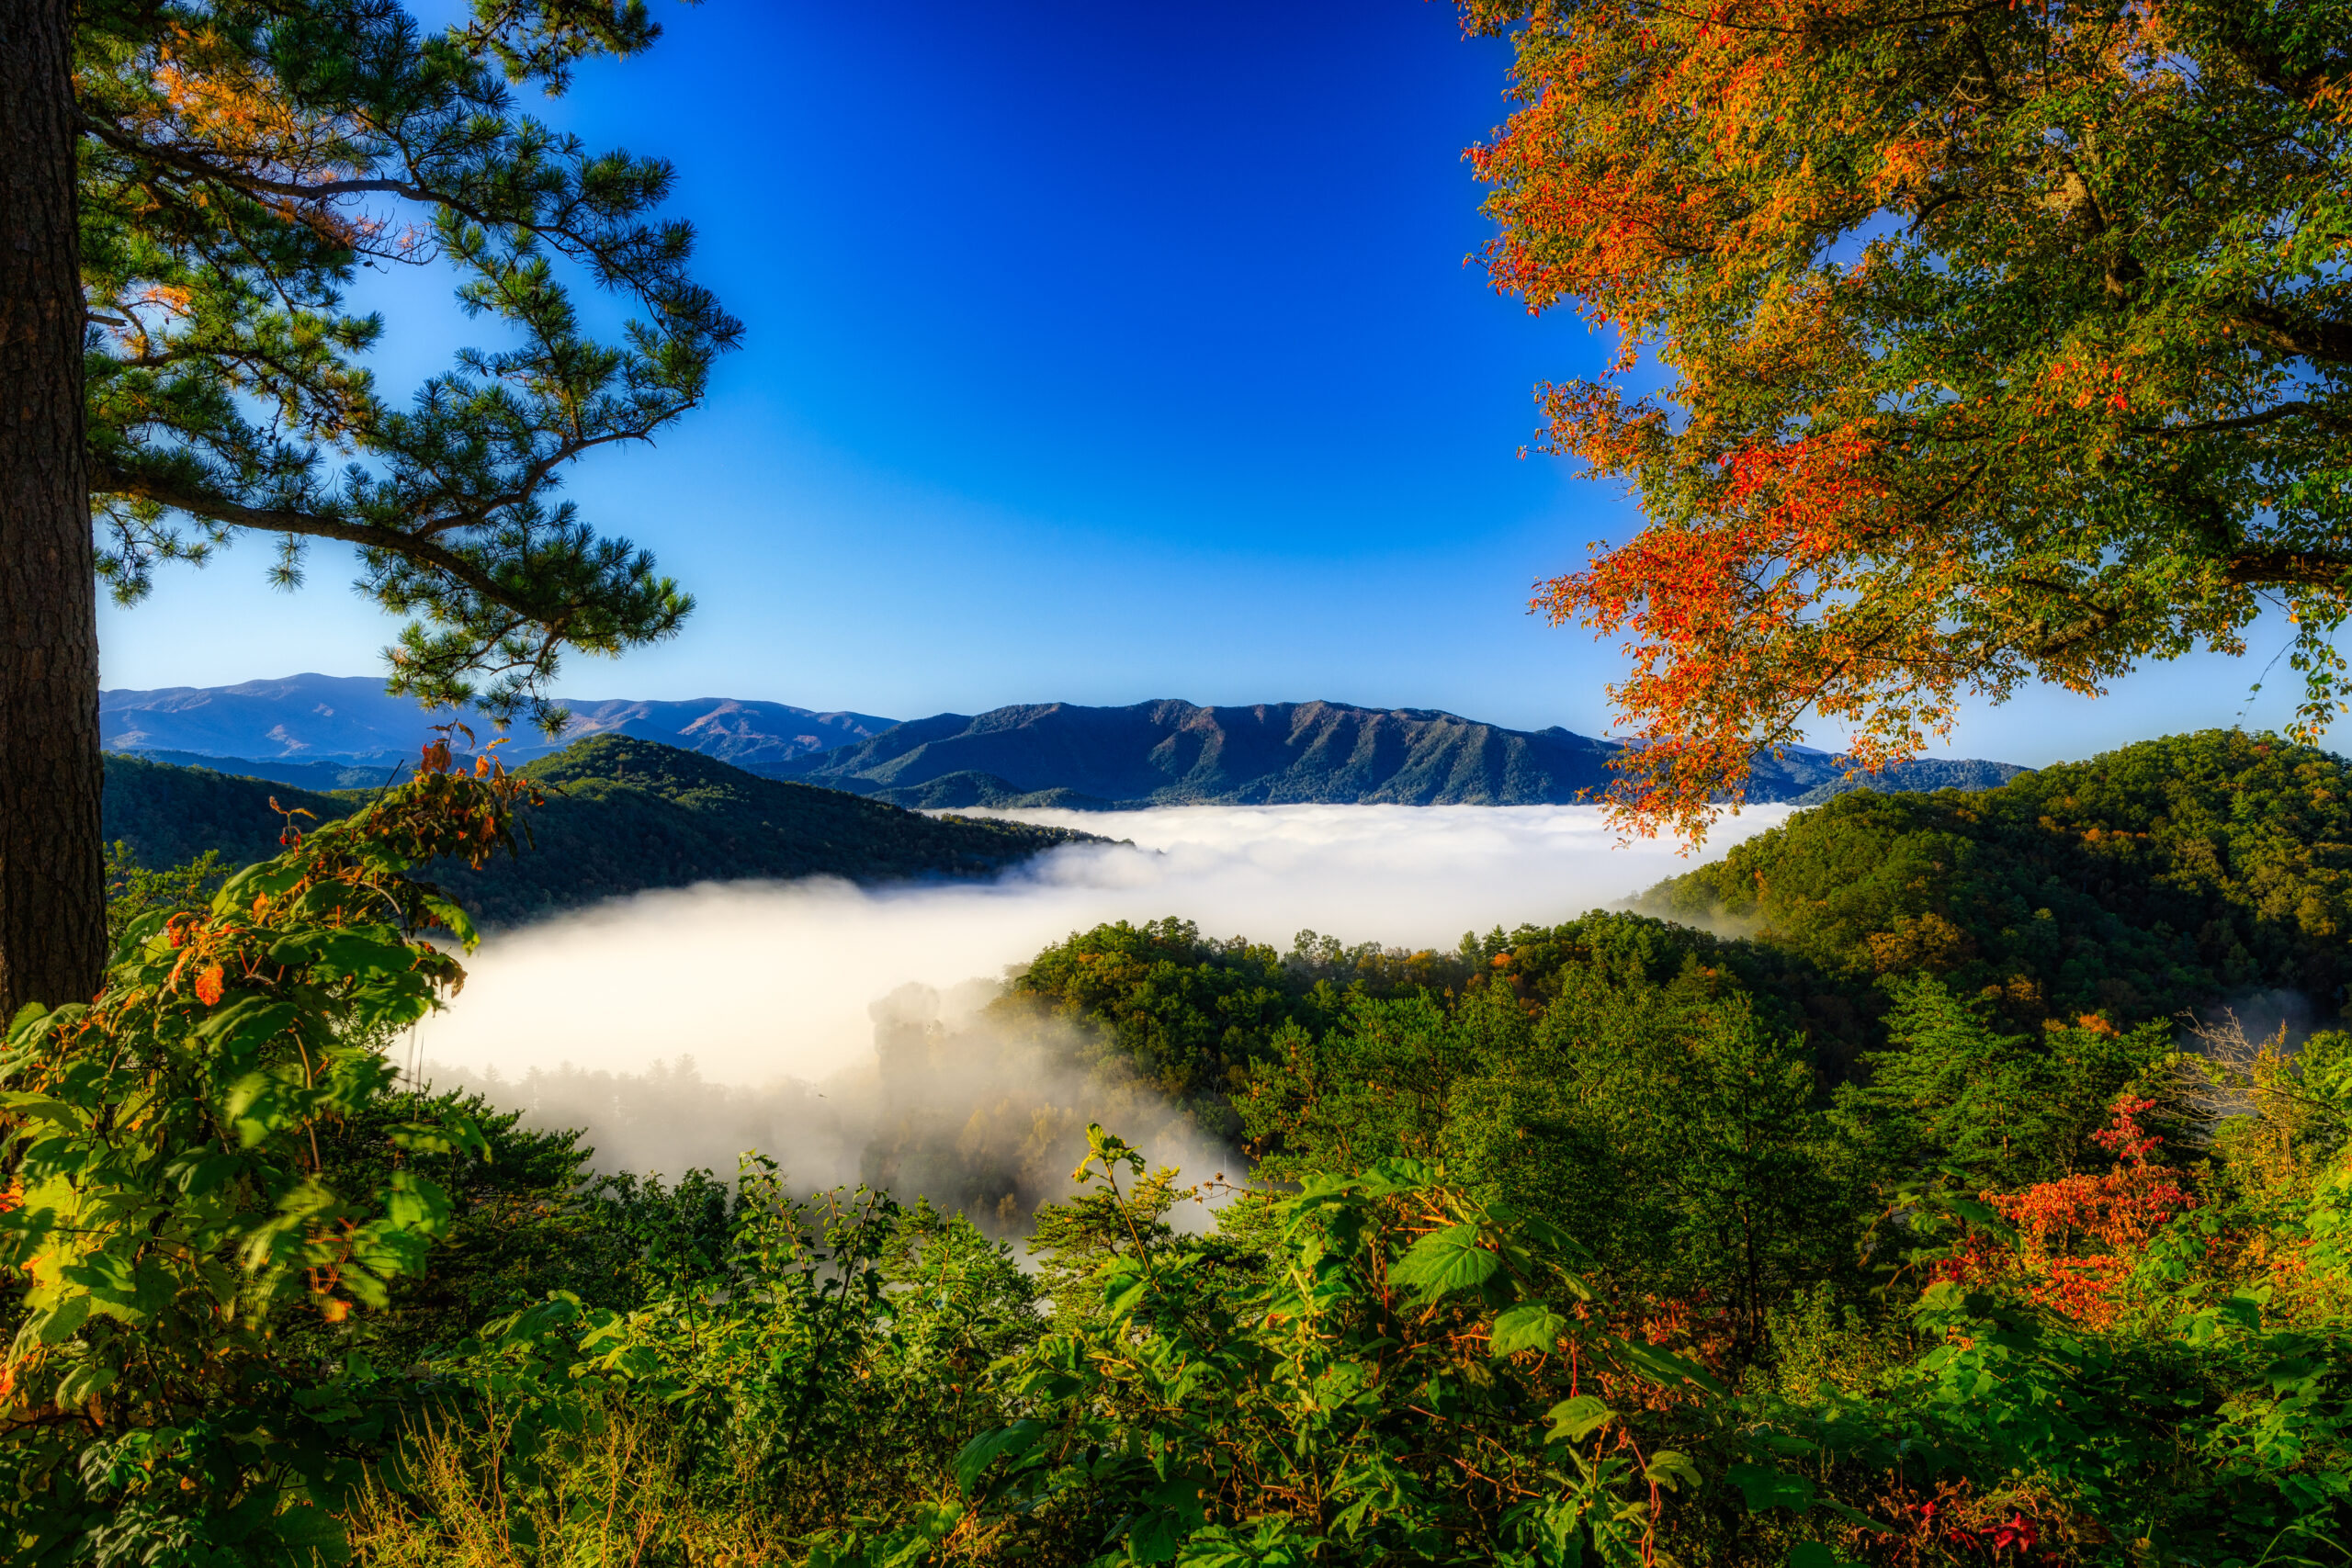 Looking over a foggy Wears Valley with fall color on display.